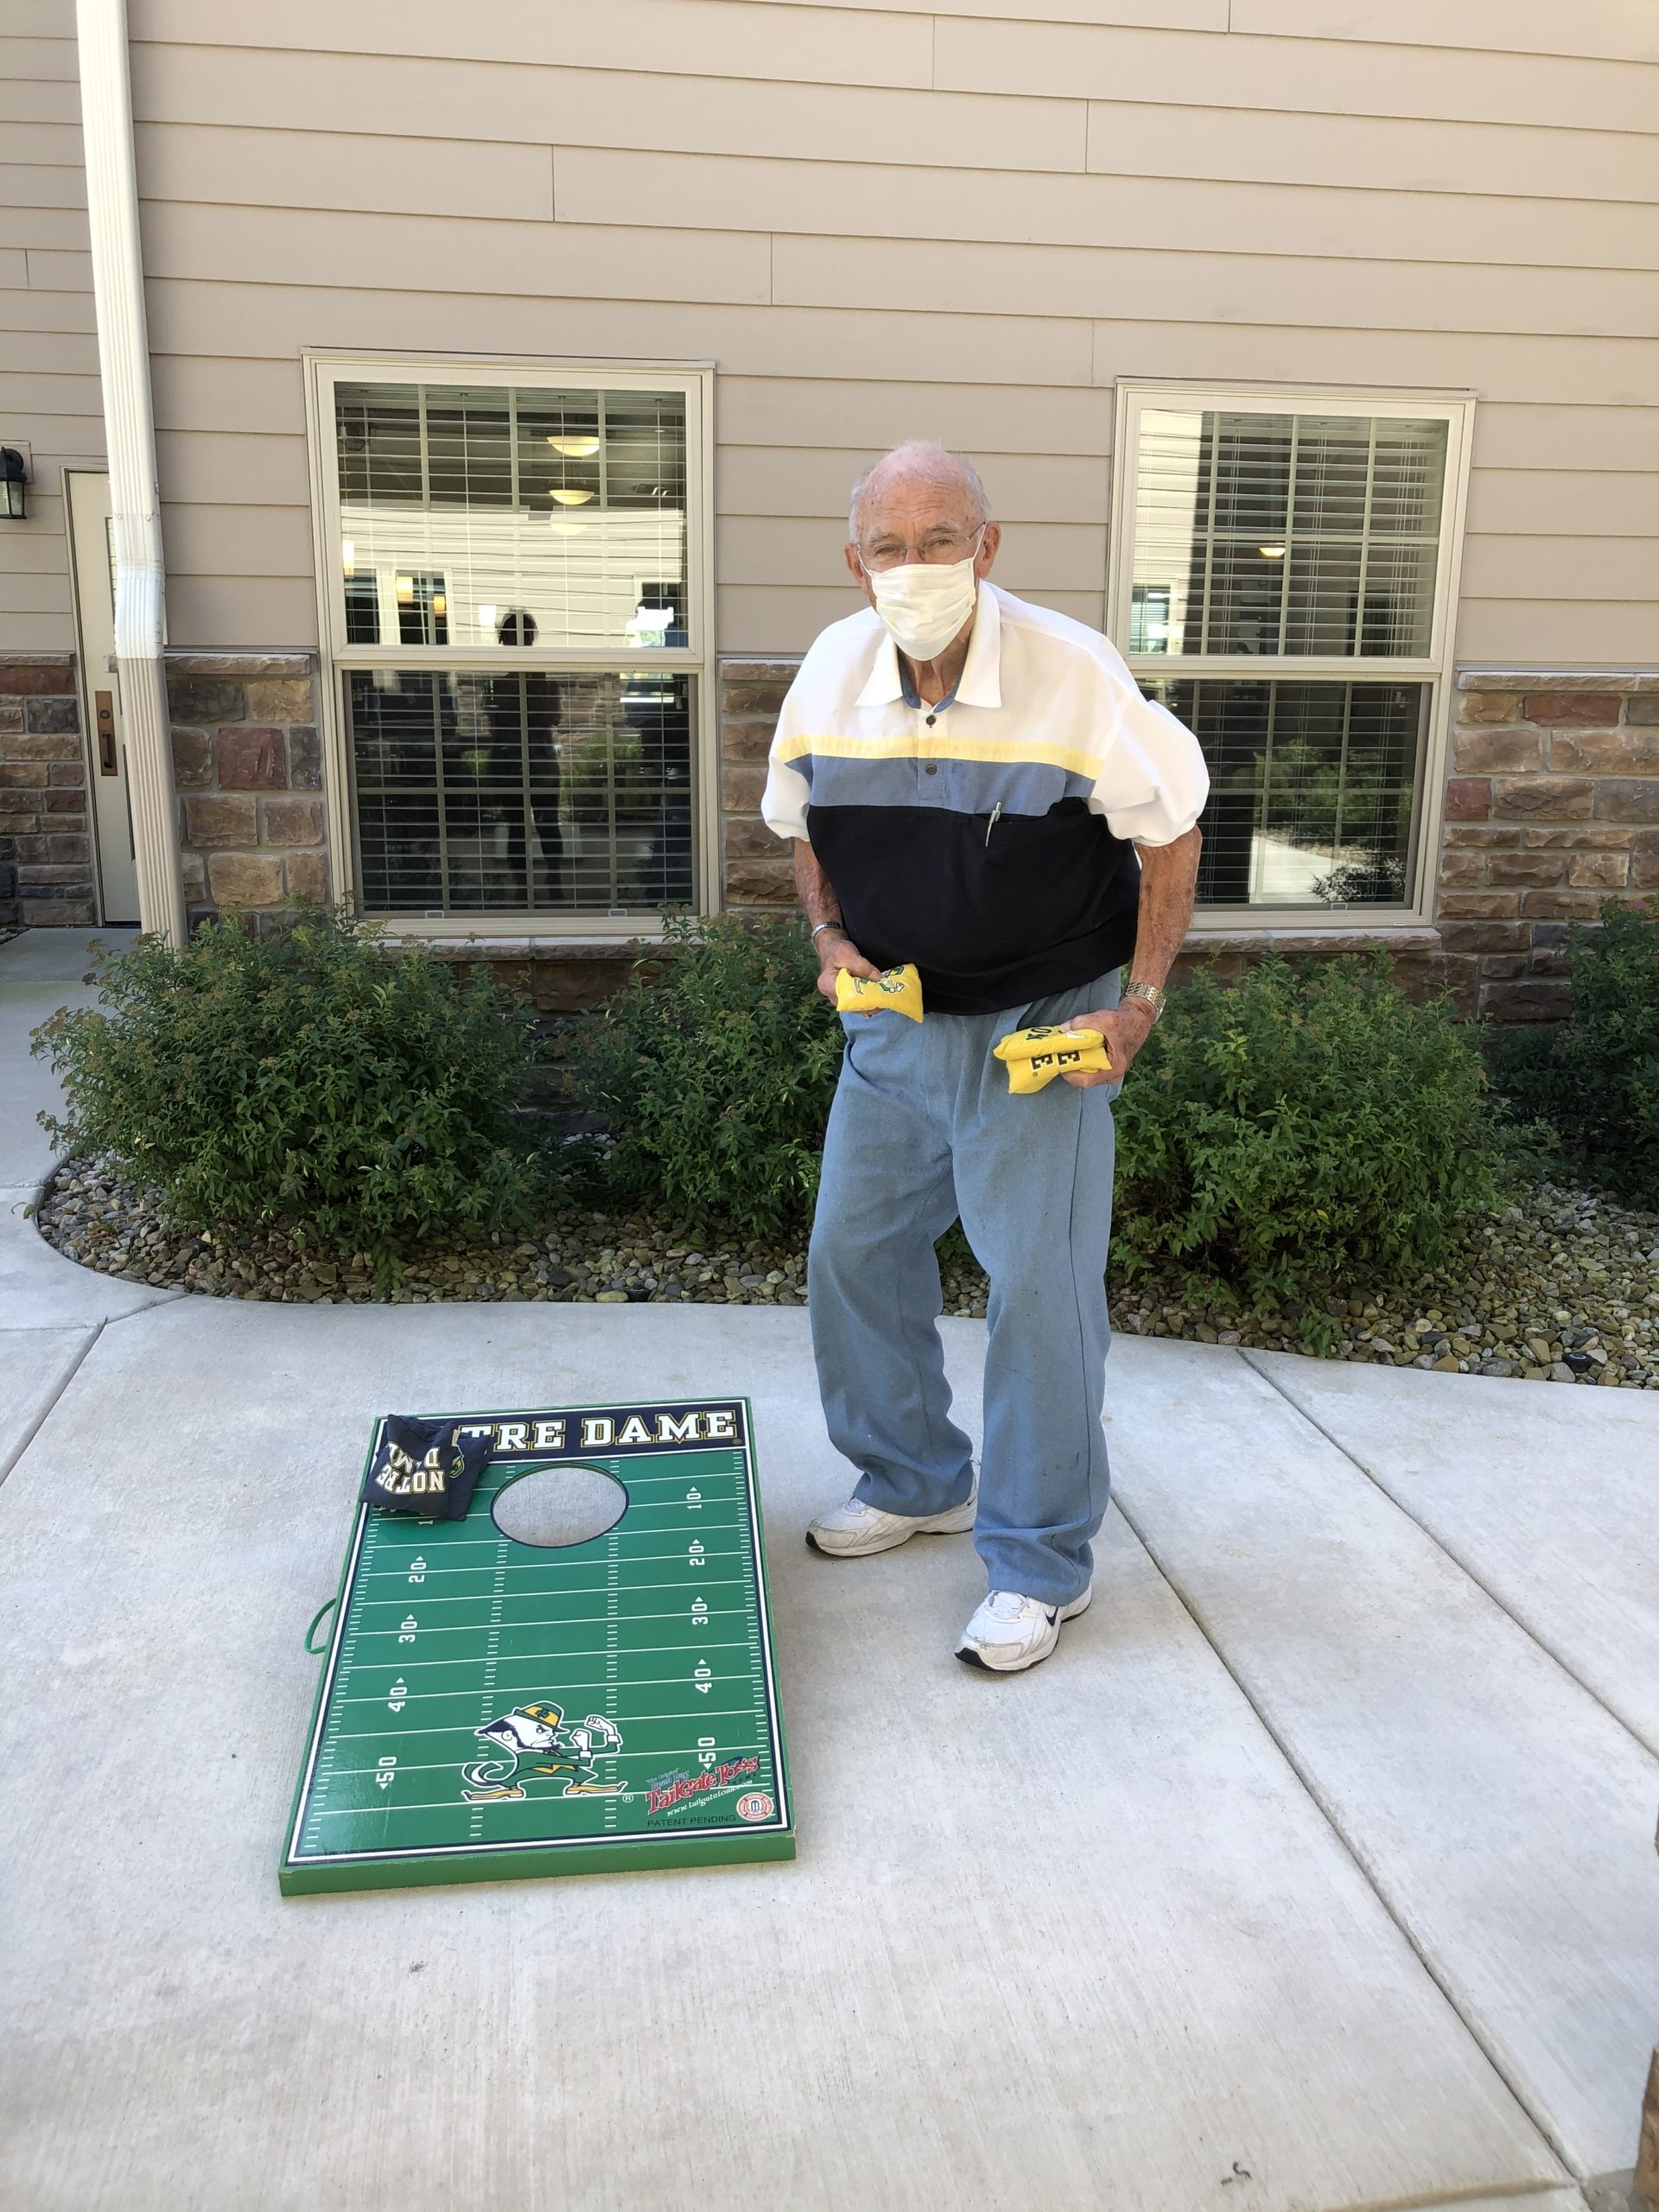 Bill is ready to challenge anyone to a game of Corn Hole.